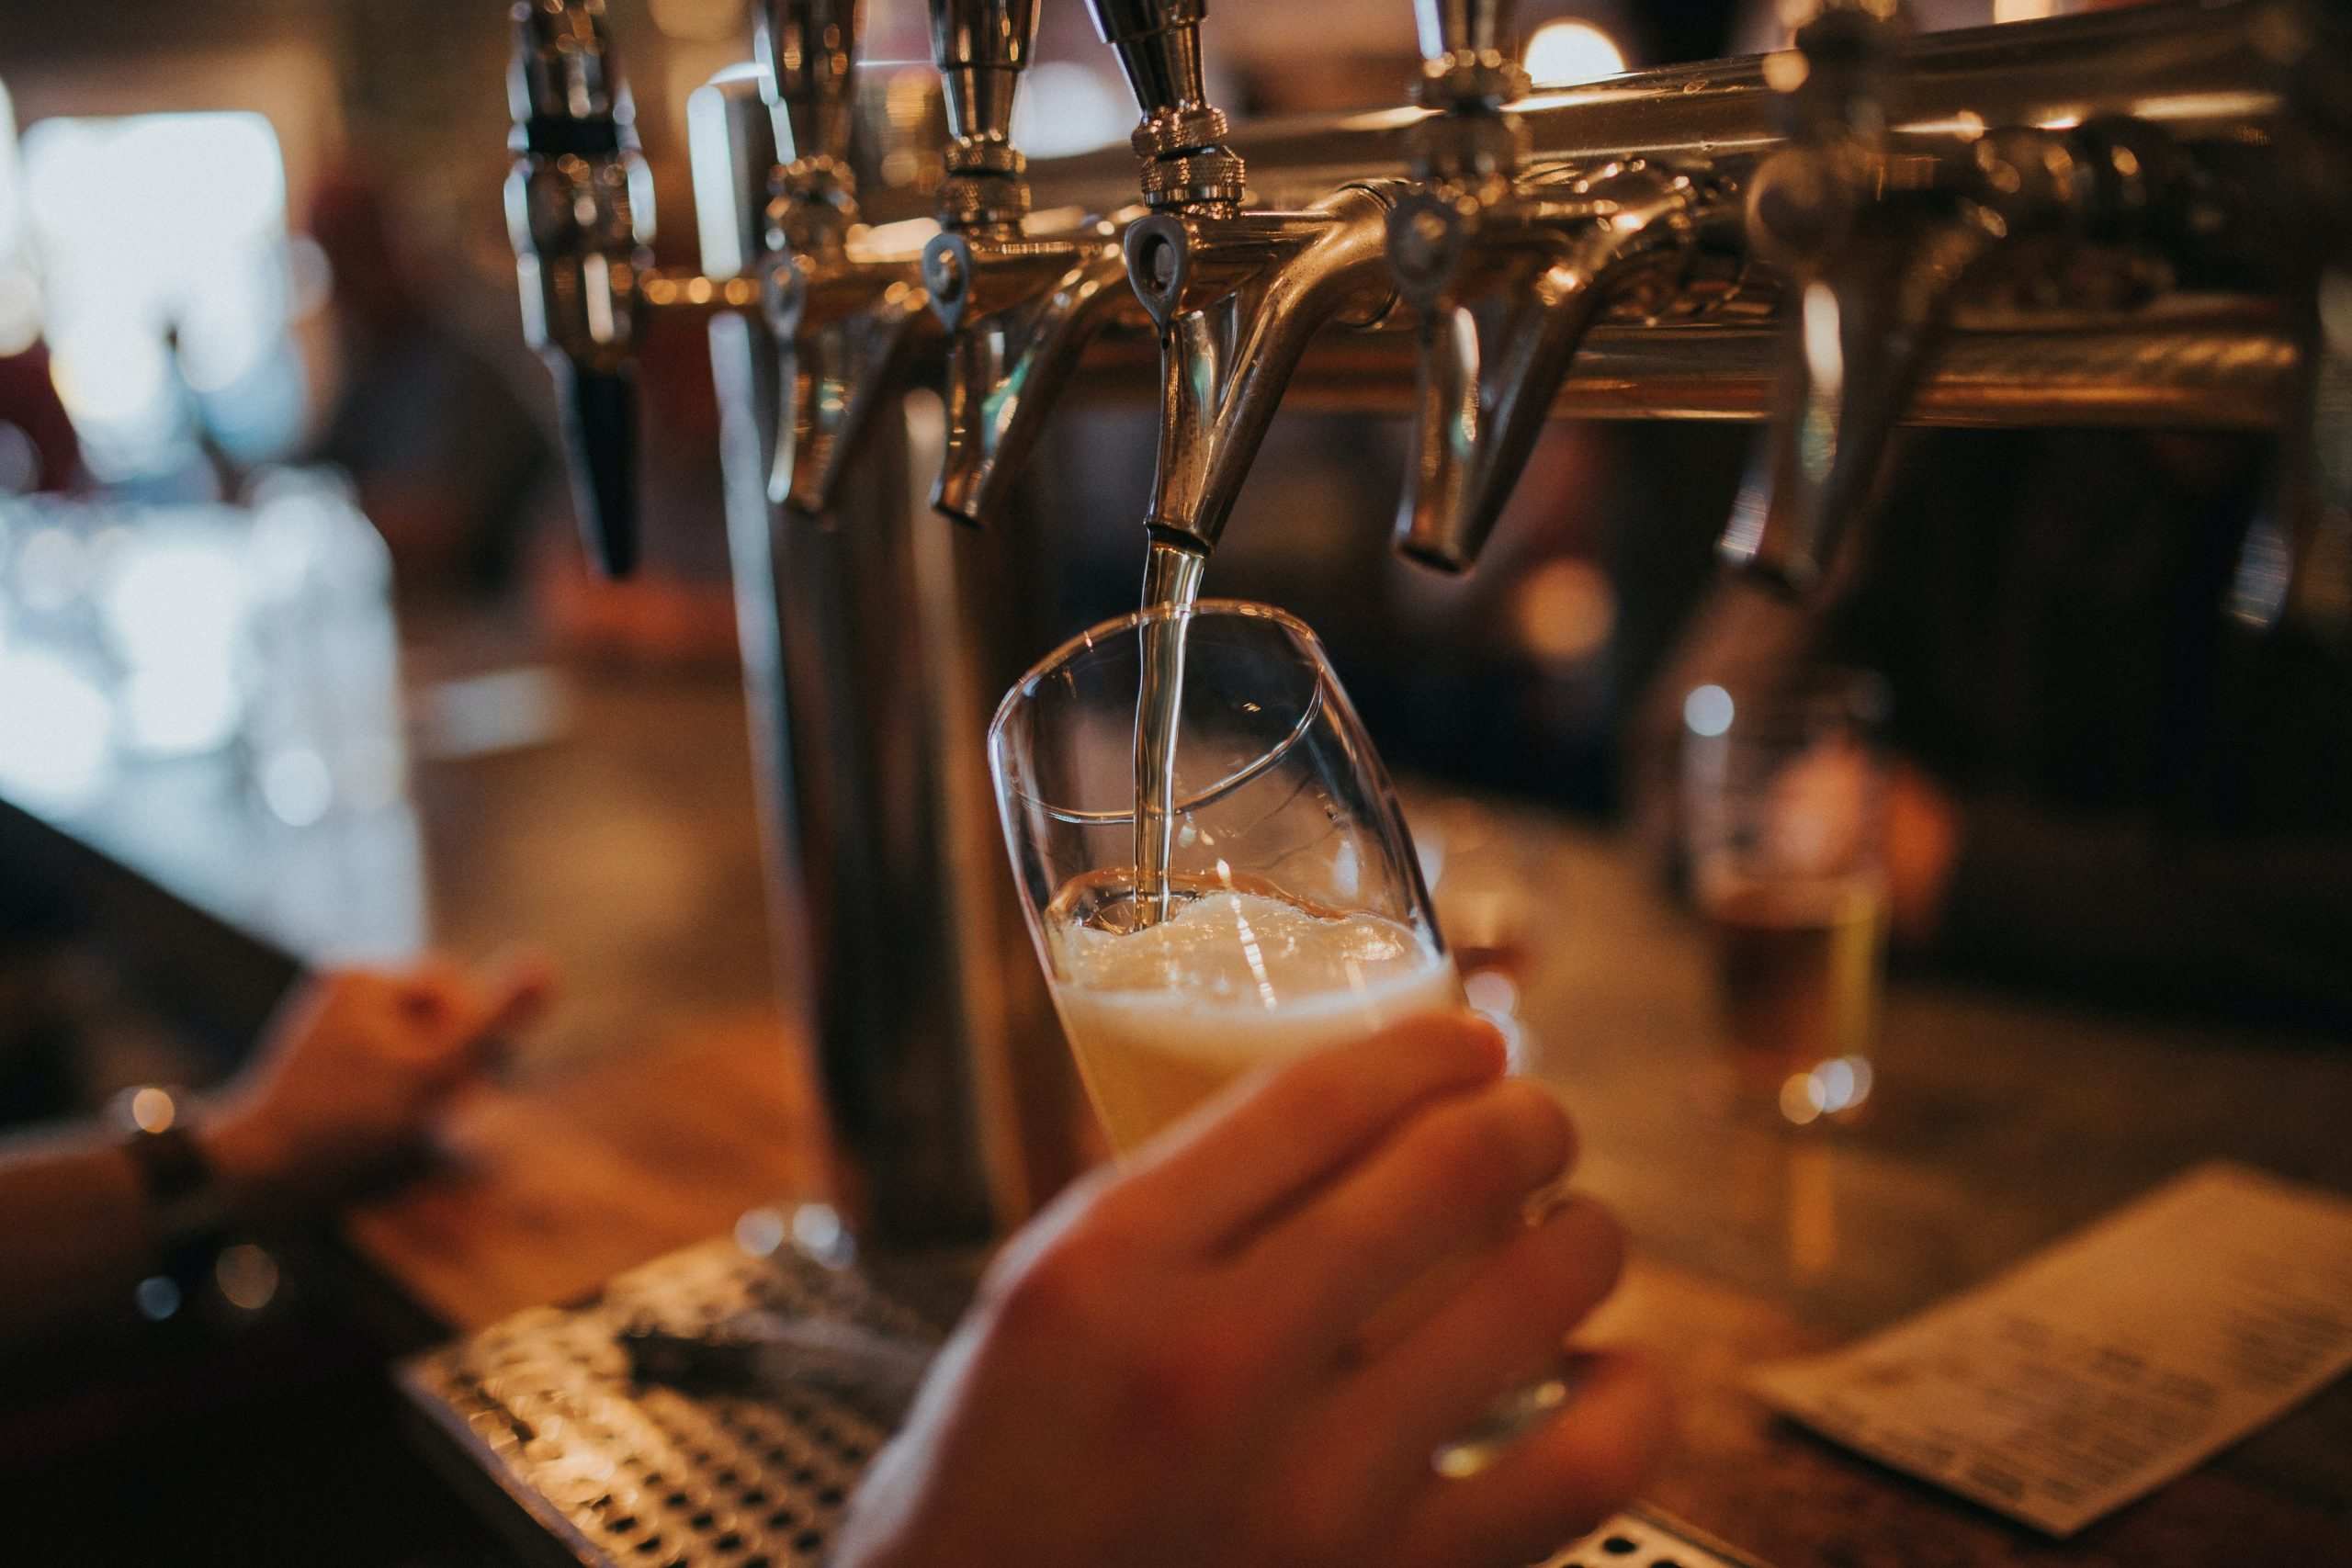 No more than 10 standard drinks a week, or 4 a day: new guidelines urge Aussies to go easy on the booze